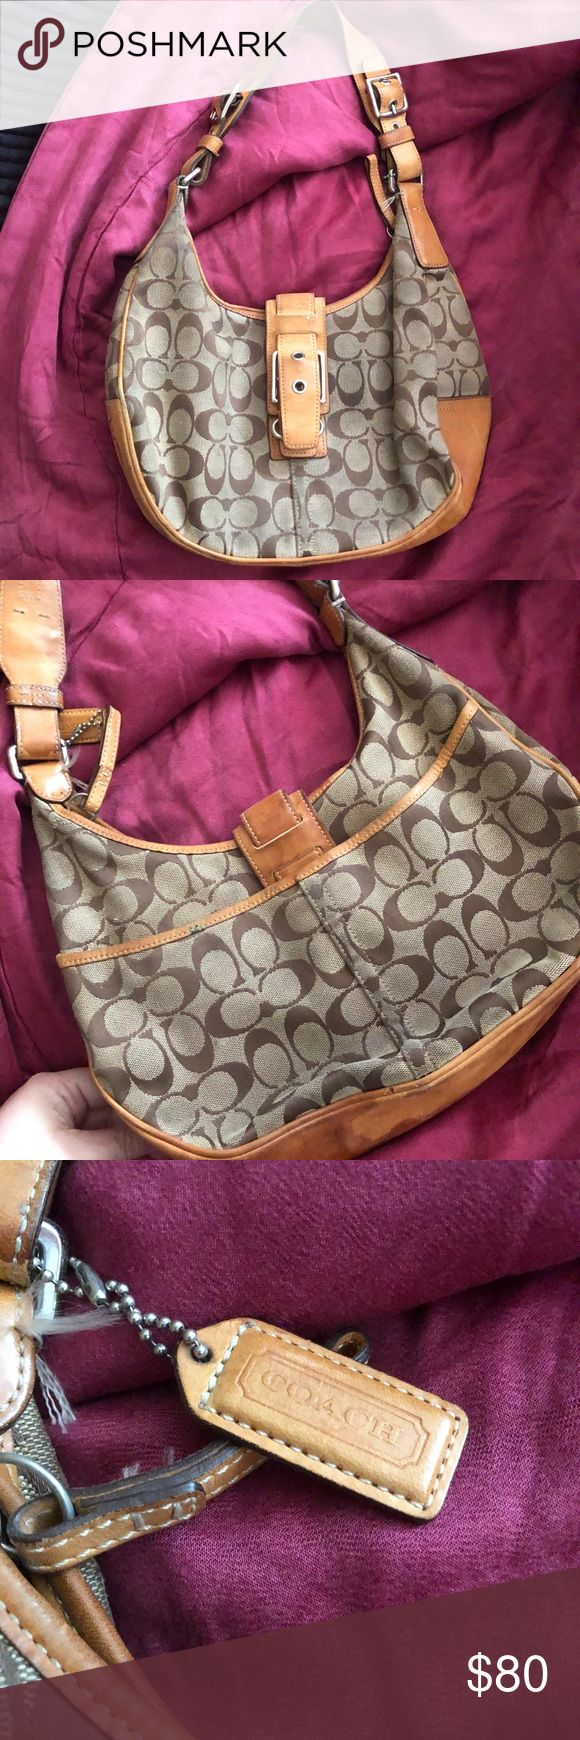 Coach Hobo Bag used This coach hobo bag is a classic he could use some dry cleaning never been professionally cleaned it is used or we might say loved.   Handle my items for a discount  I listed a lower price to figure in your dry cleaning fee Coach Bags Hobos